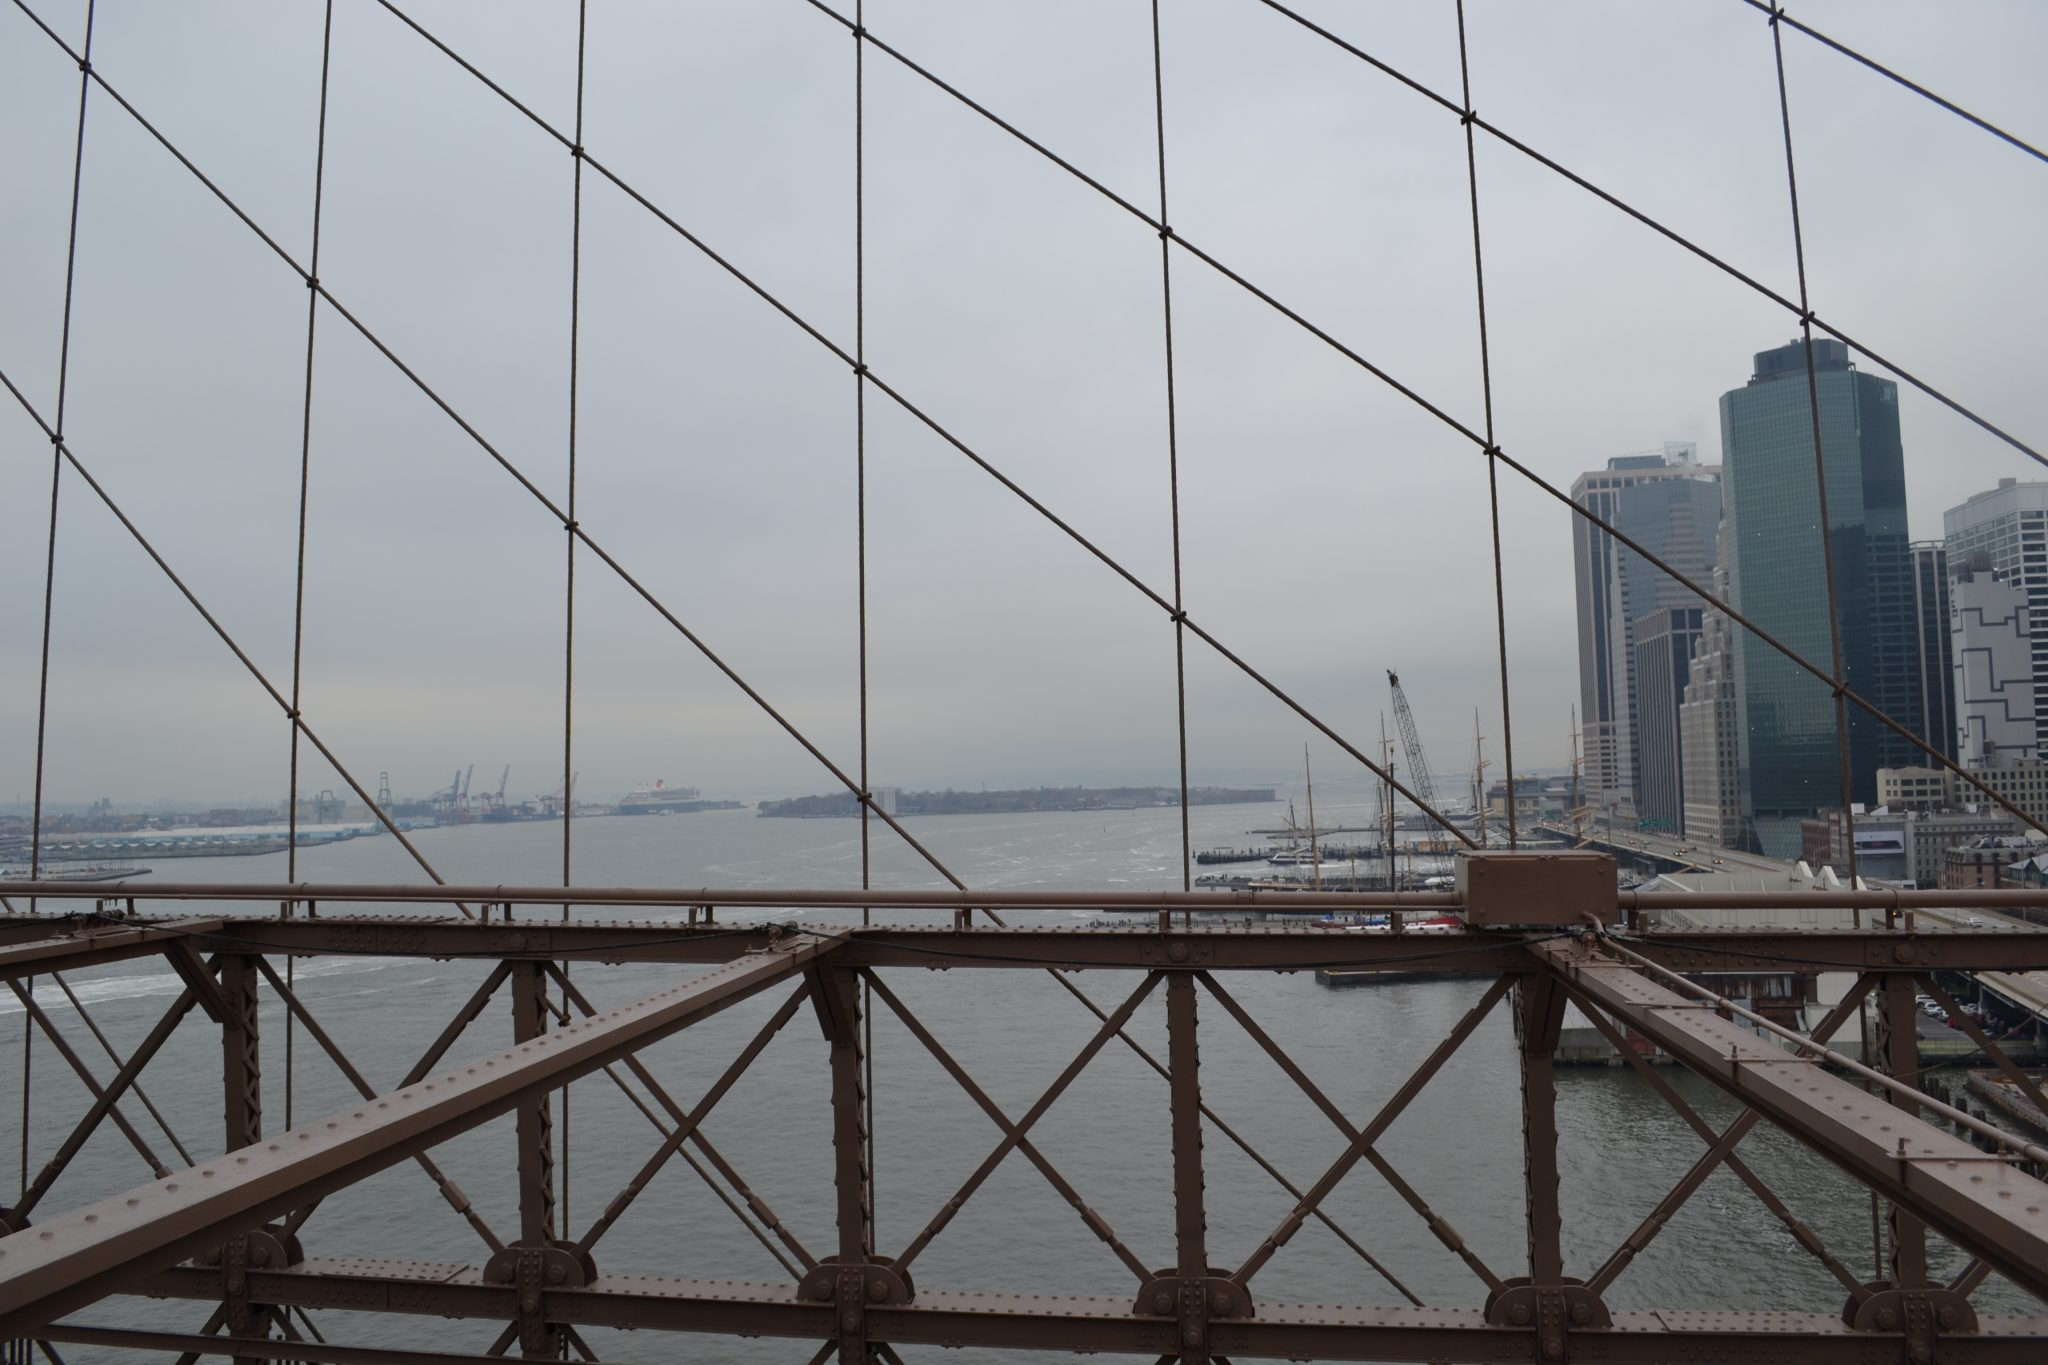 Eine Woche in New York: Brooklyn Bridge & Citystore - dsc 0019